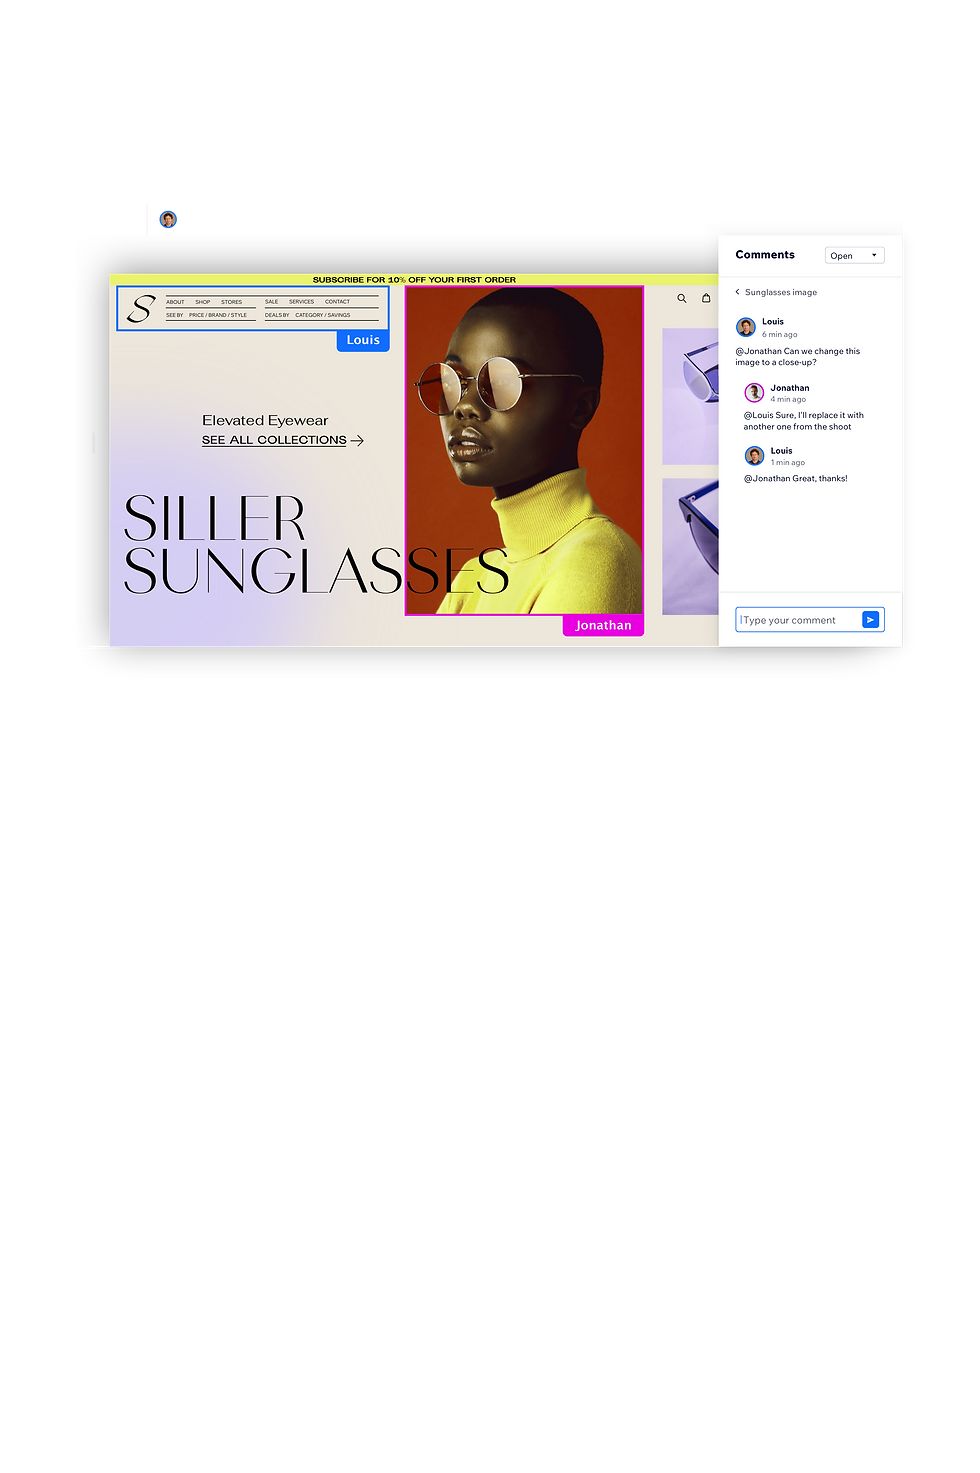 """""""Siller Sunglasses"""" site in progress. Model wearing sunglasses and the chat functionality open on right."""